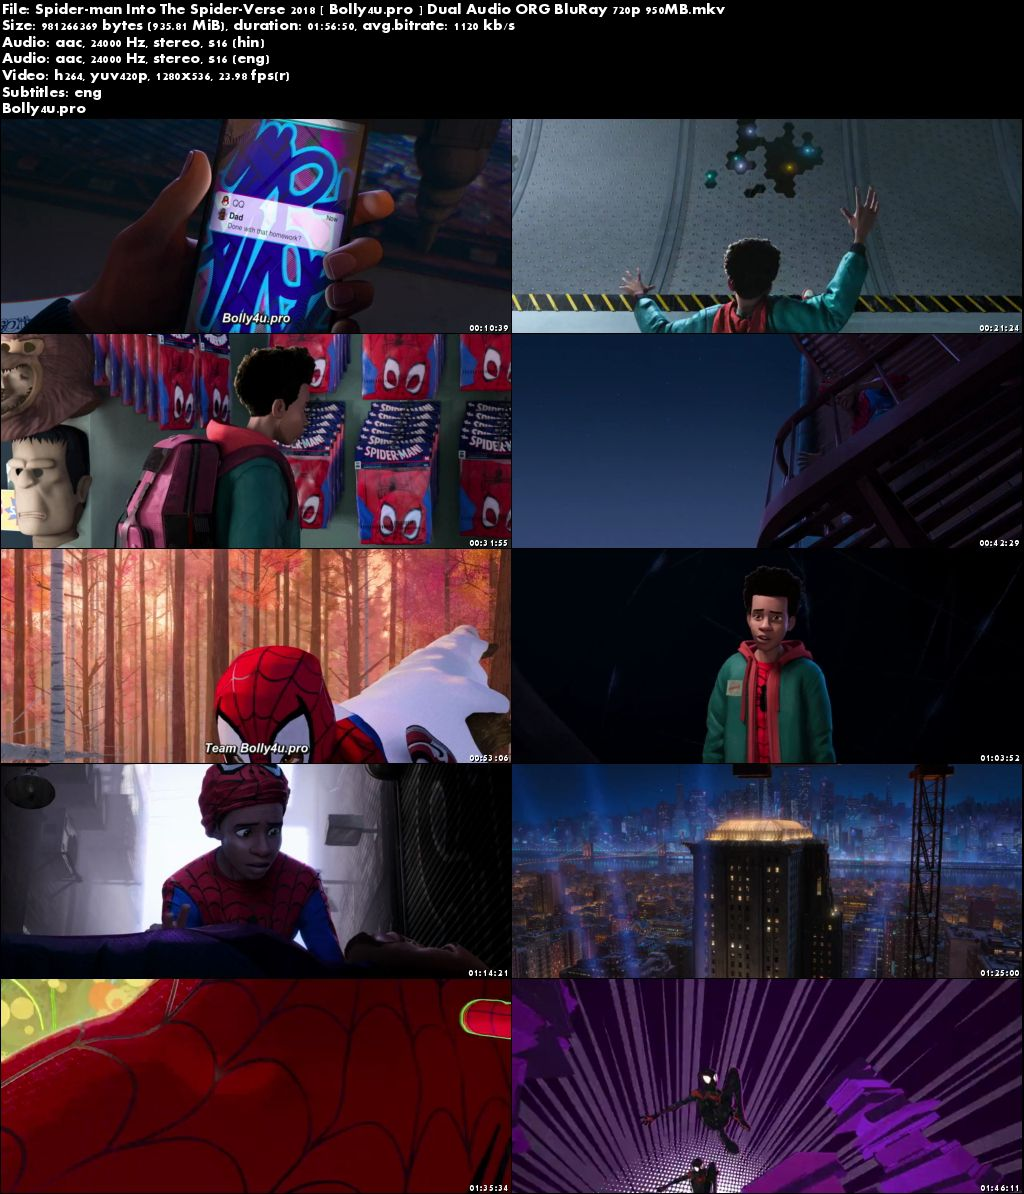 Spider-Man Into the Spider-Verse 2018 BRRip 400MB Hindi Dual Audio ORG 480p Download